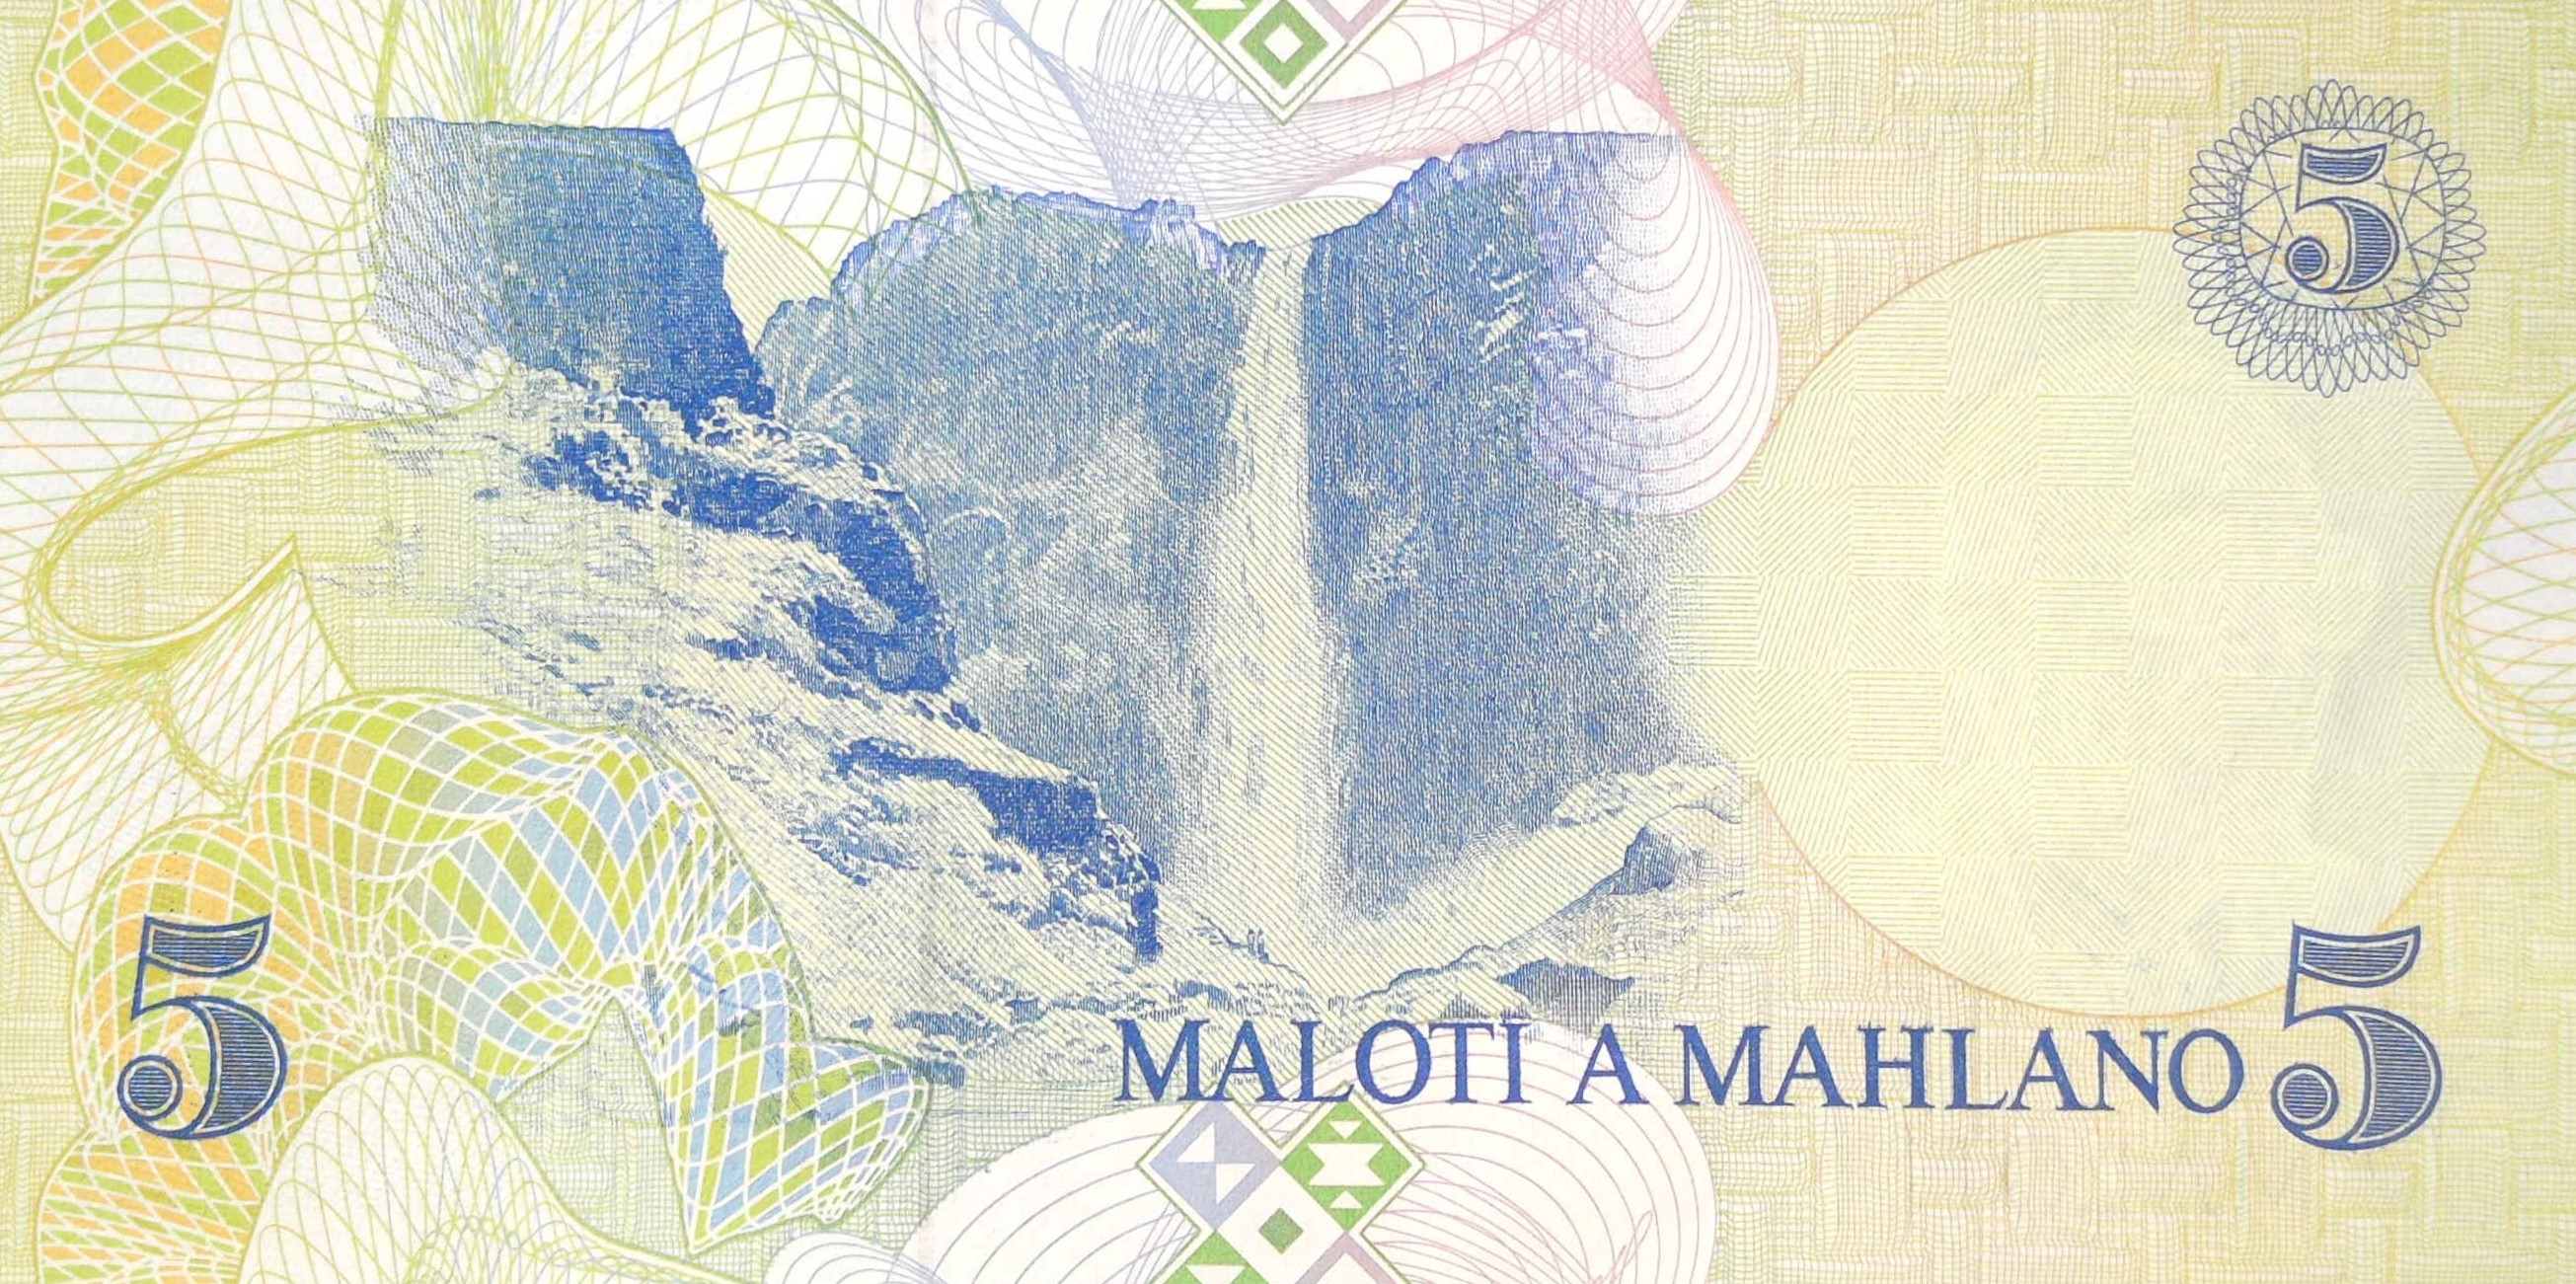 lesotho 5 maloti banknote year 1989 back featuring Maletsunyane Falls of Lesotho